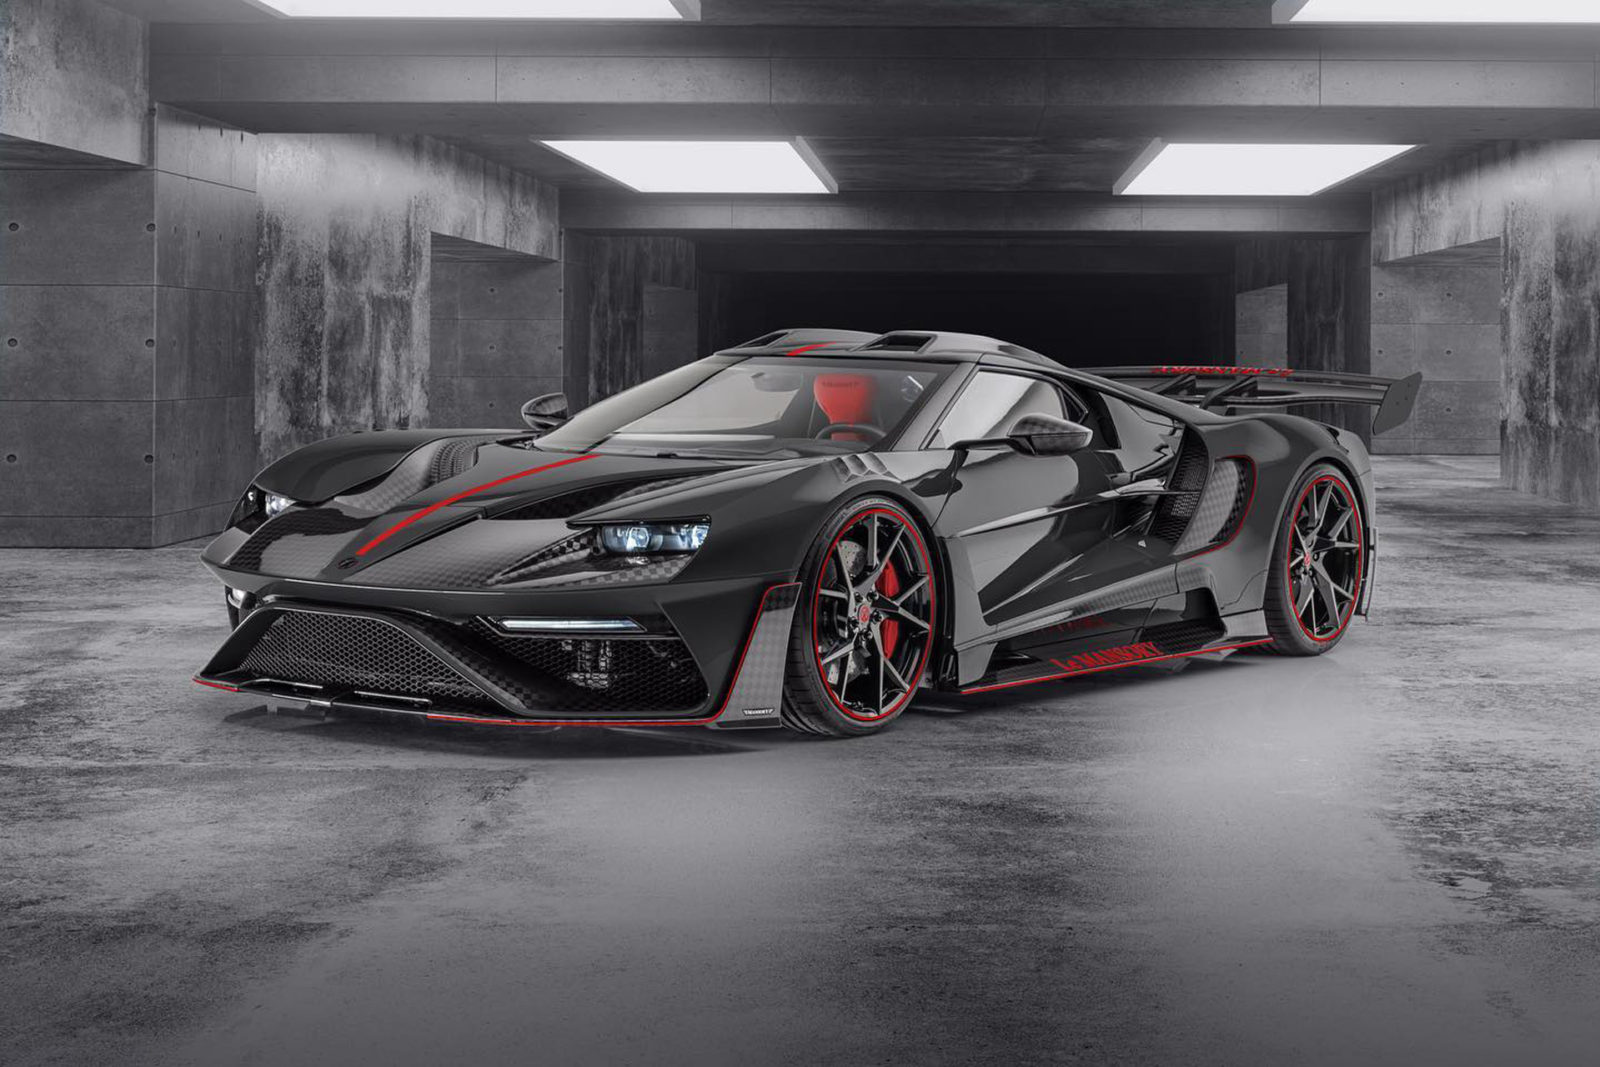 mansory-reveals-second-of-three-rebodied-ford-gt-supercars